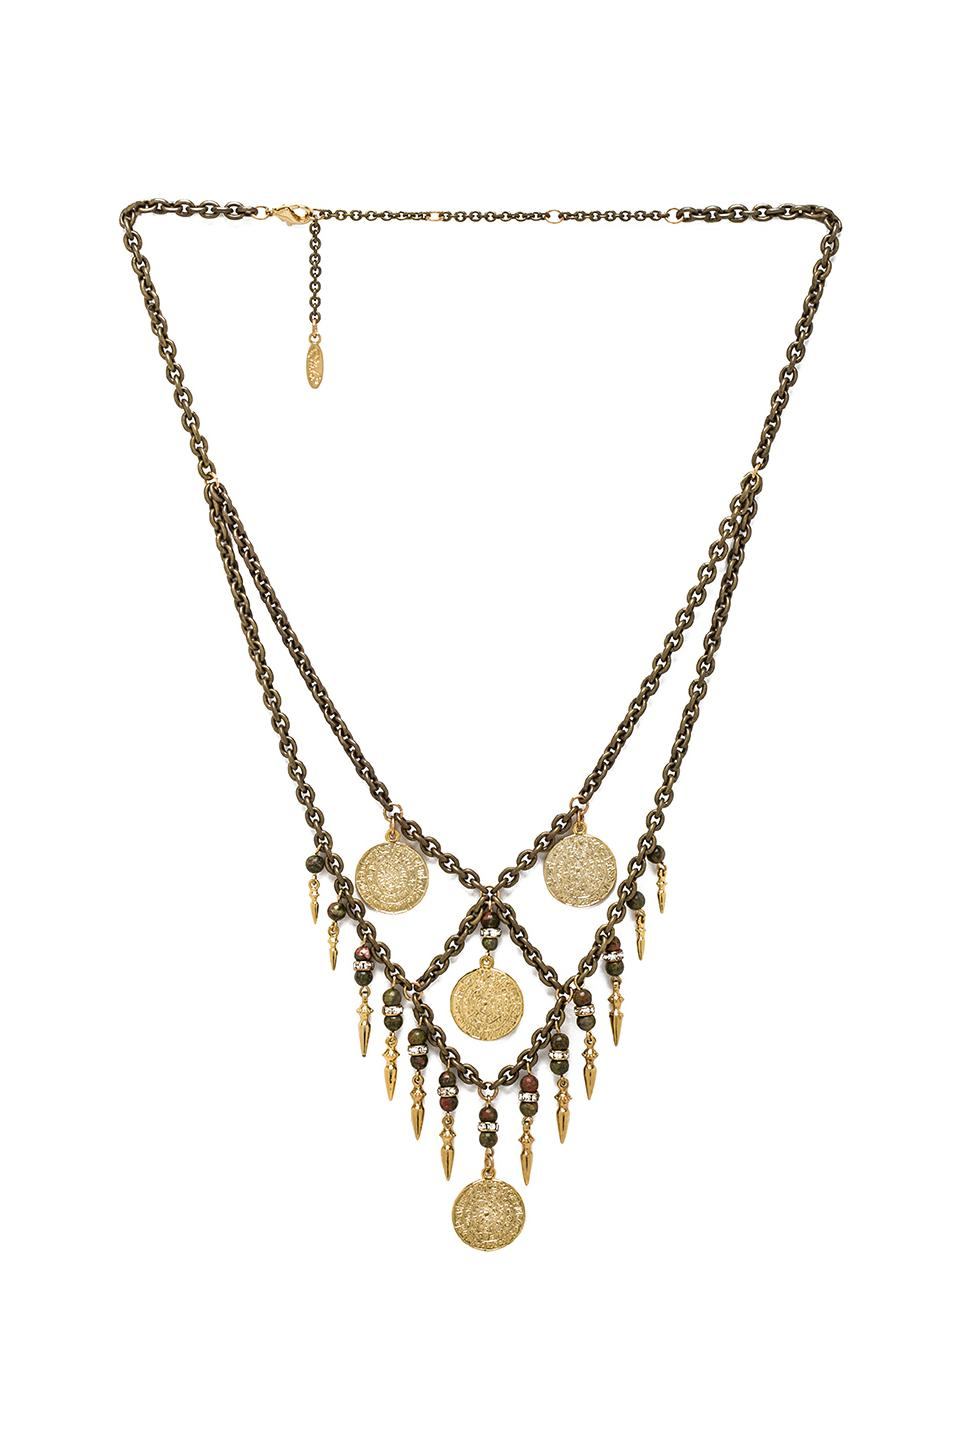 Ettika Criss Cross Necklace in Brass